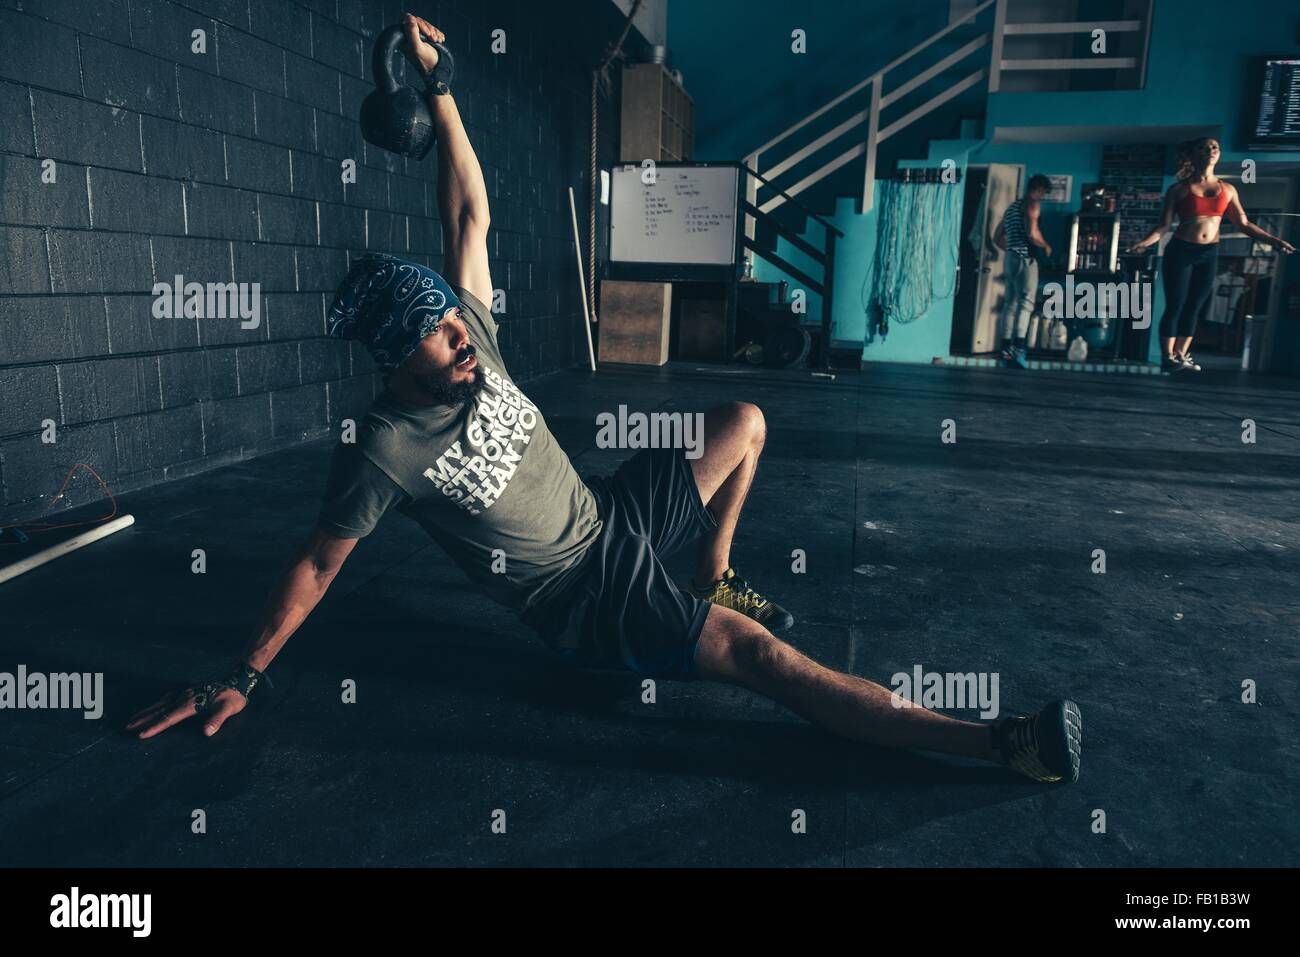 Man lifting kettlebell in gym Photo Stock